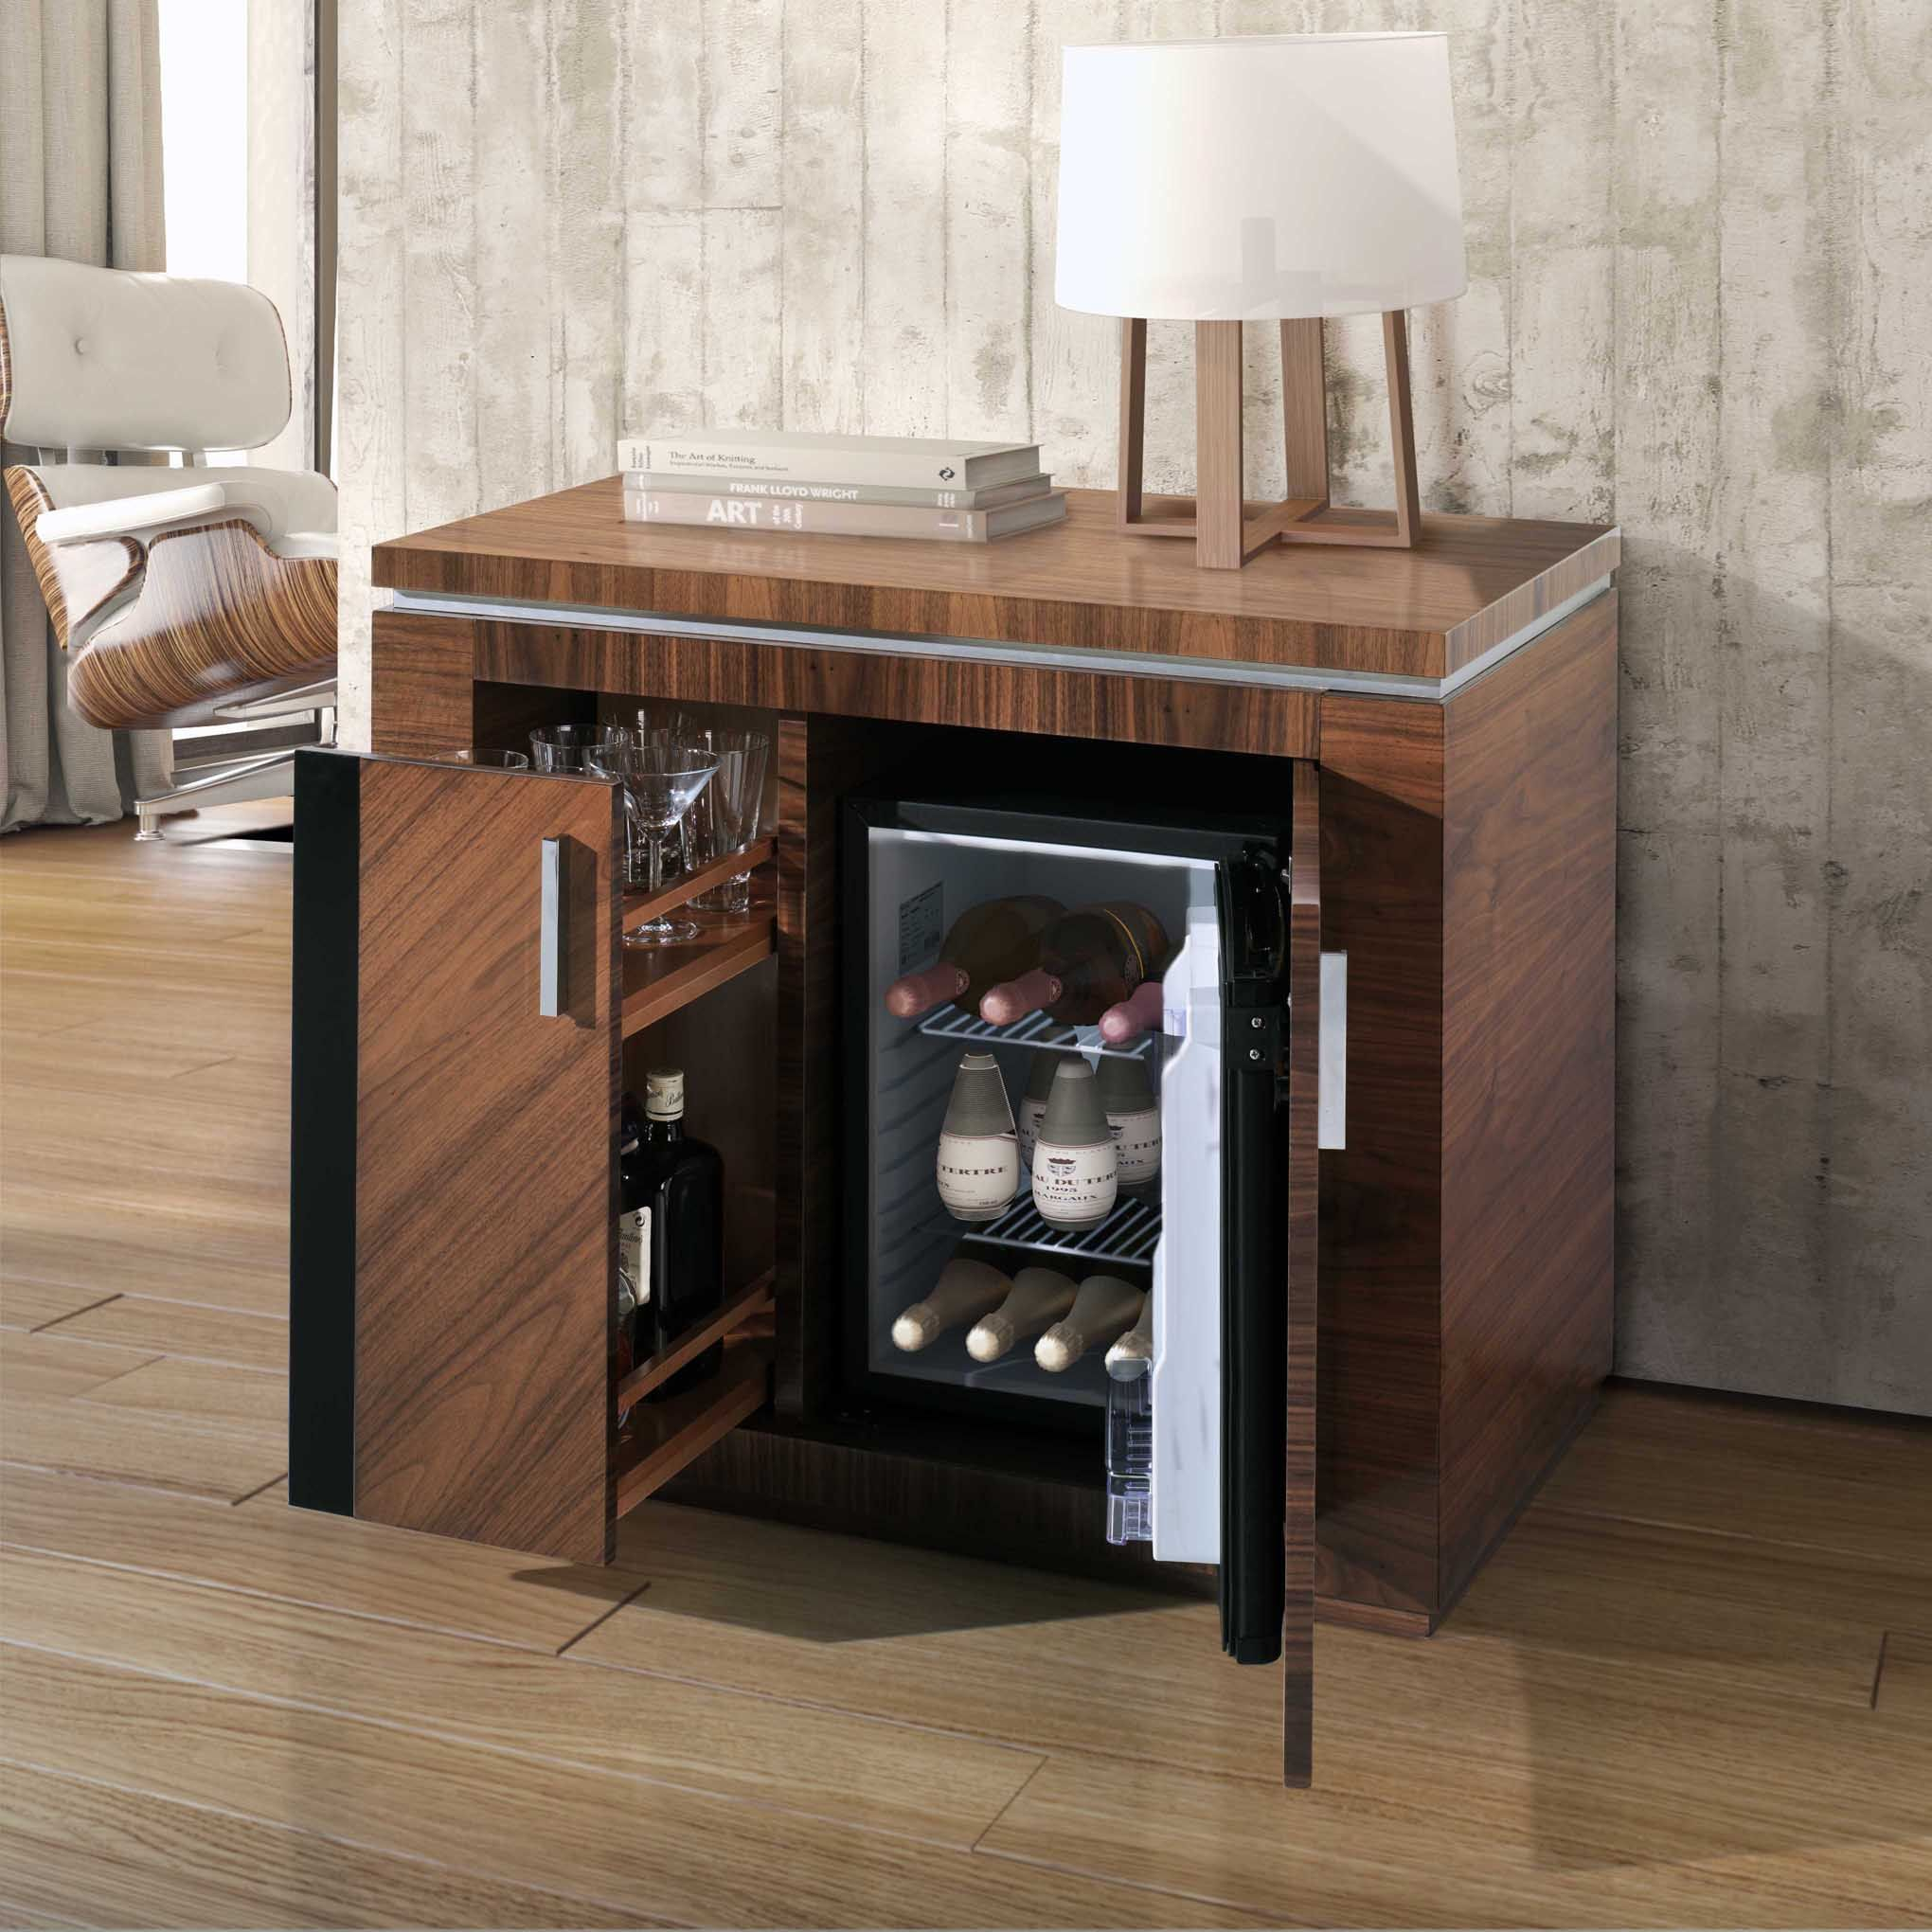 Muebles de bar contemporaneos buscar con google casa for Muebles bar diseno